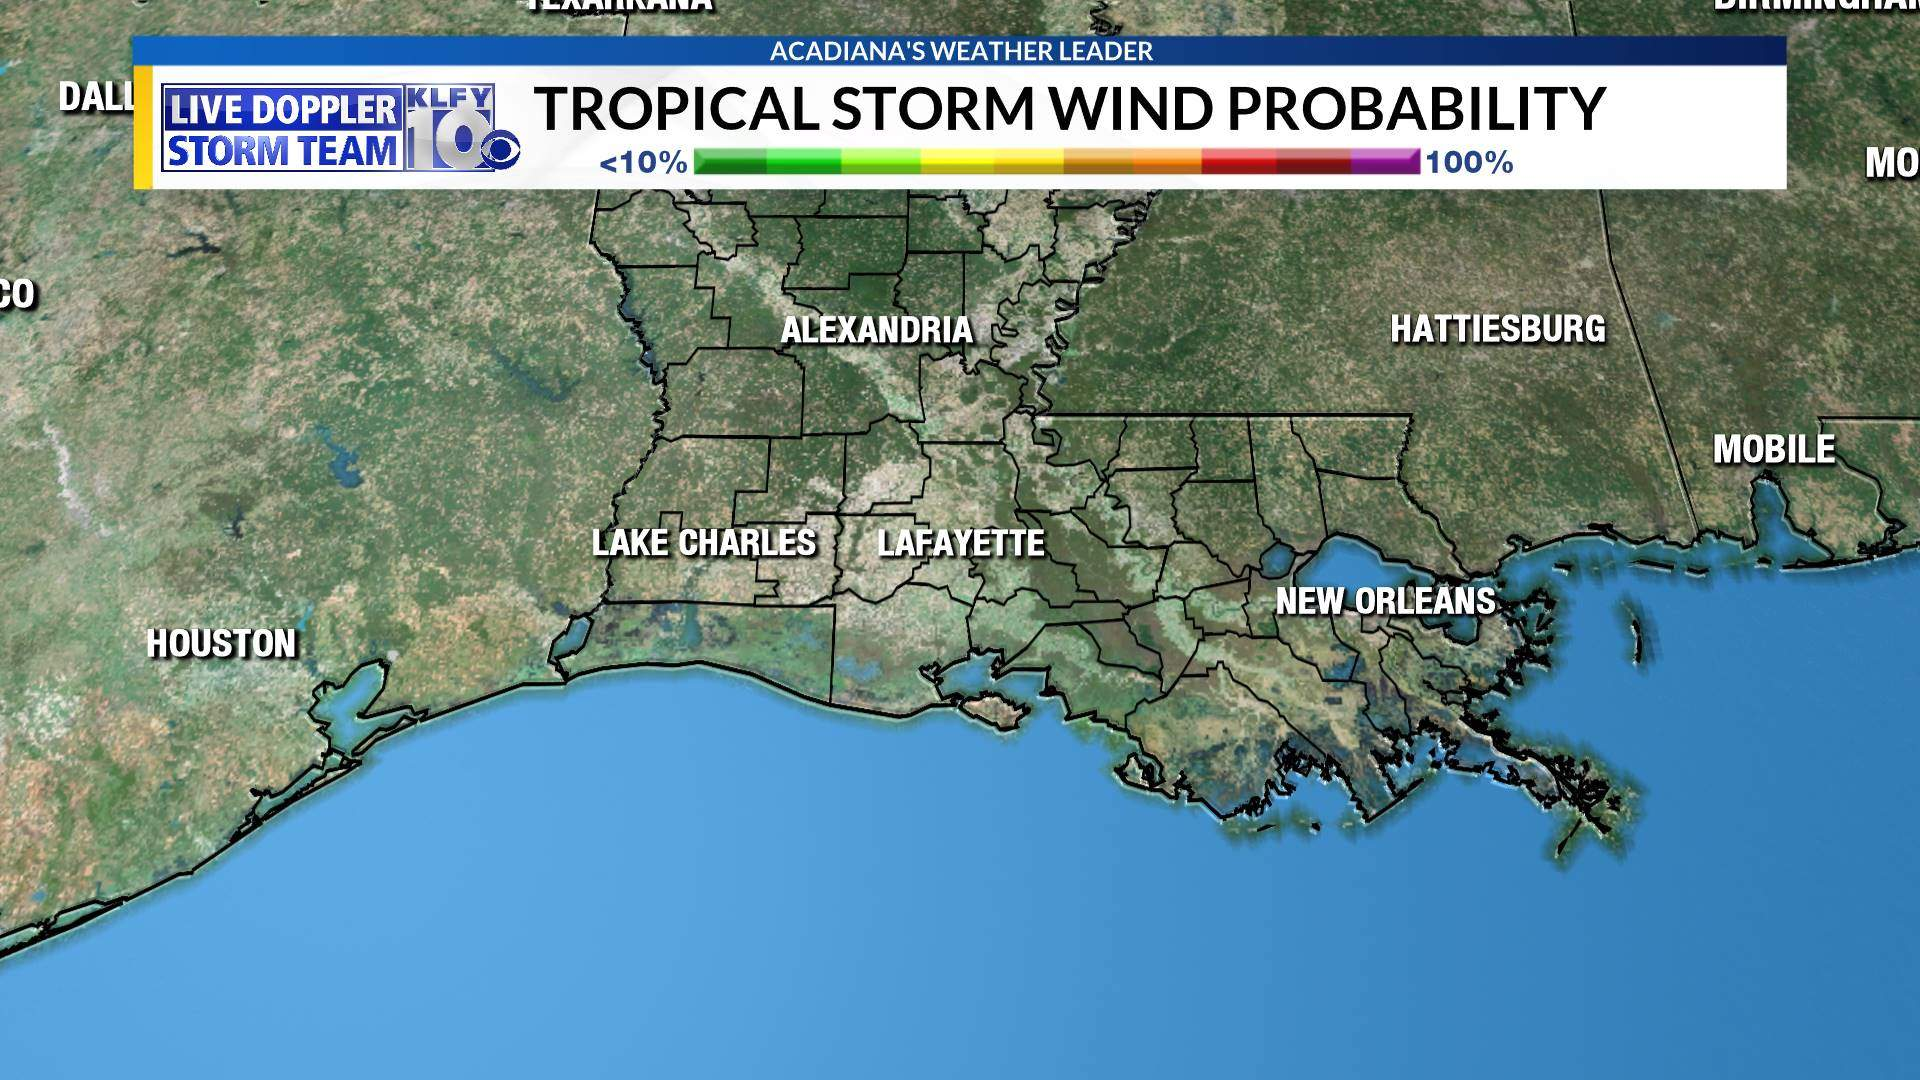 Tropical Storm Wind Probability